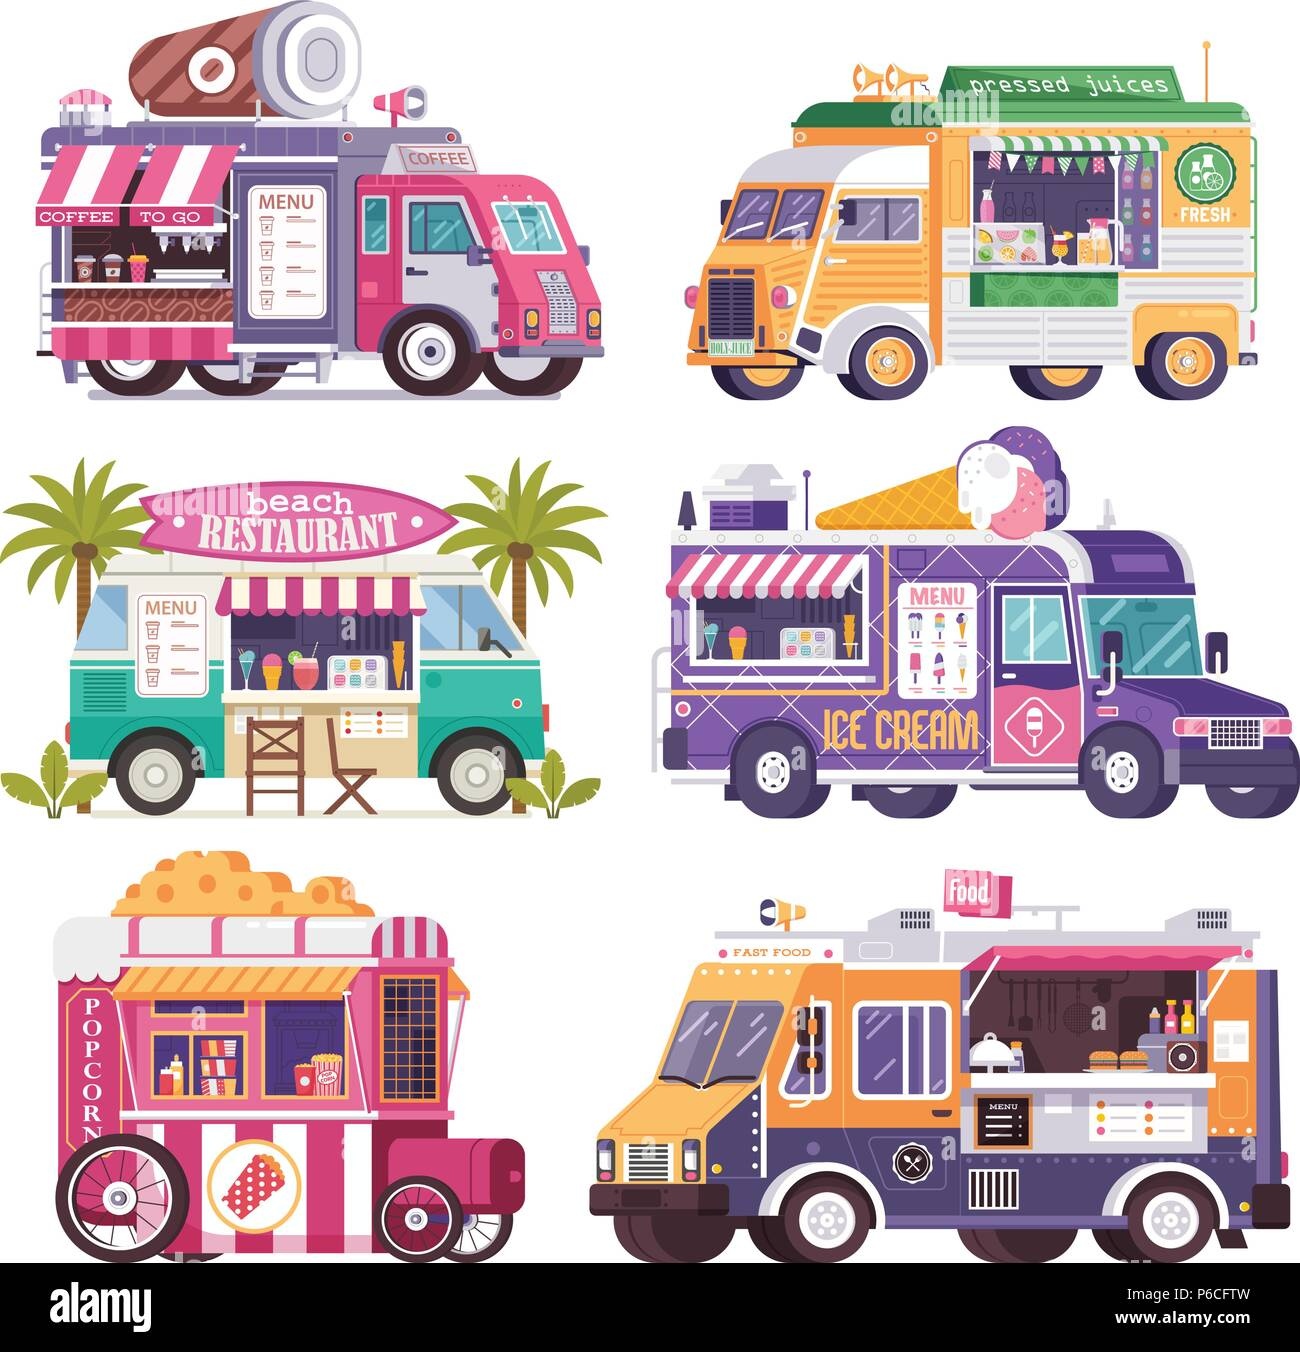 Street Food Trucks and Vans Icons Stock Vector